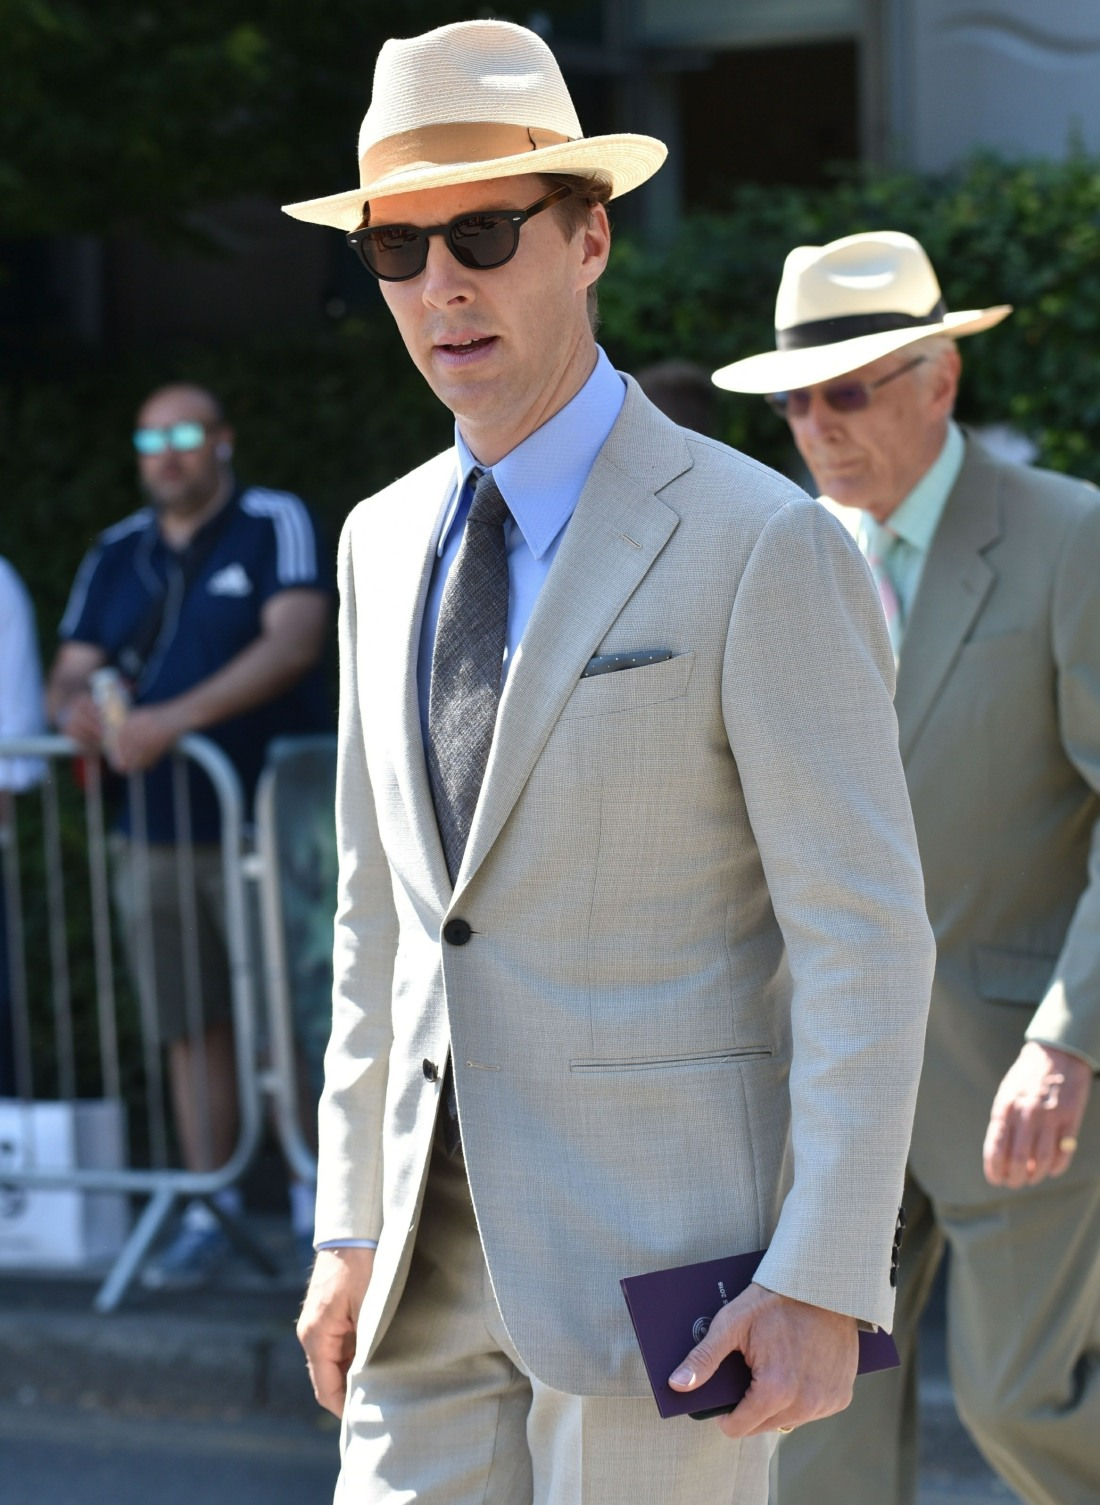 Benedict Cumberbatch attends the Wimbledon Tournament in London